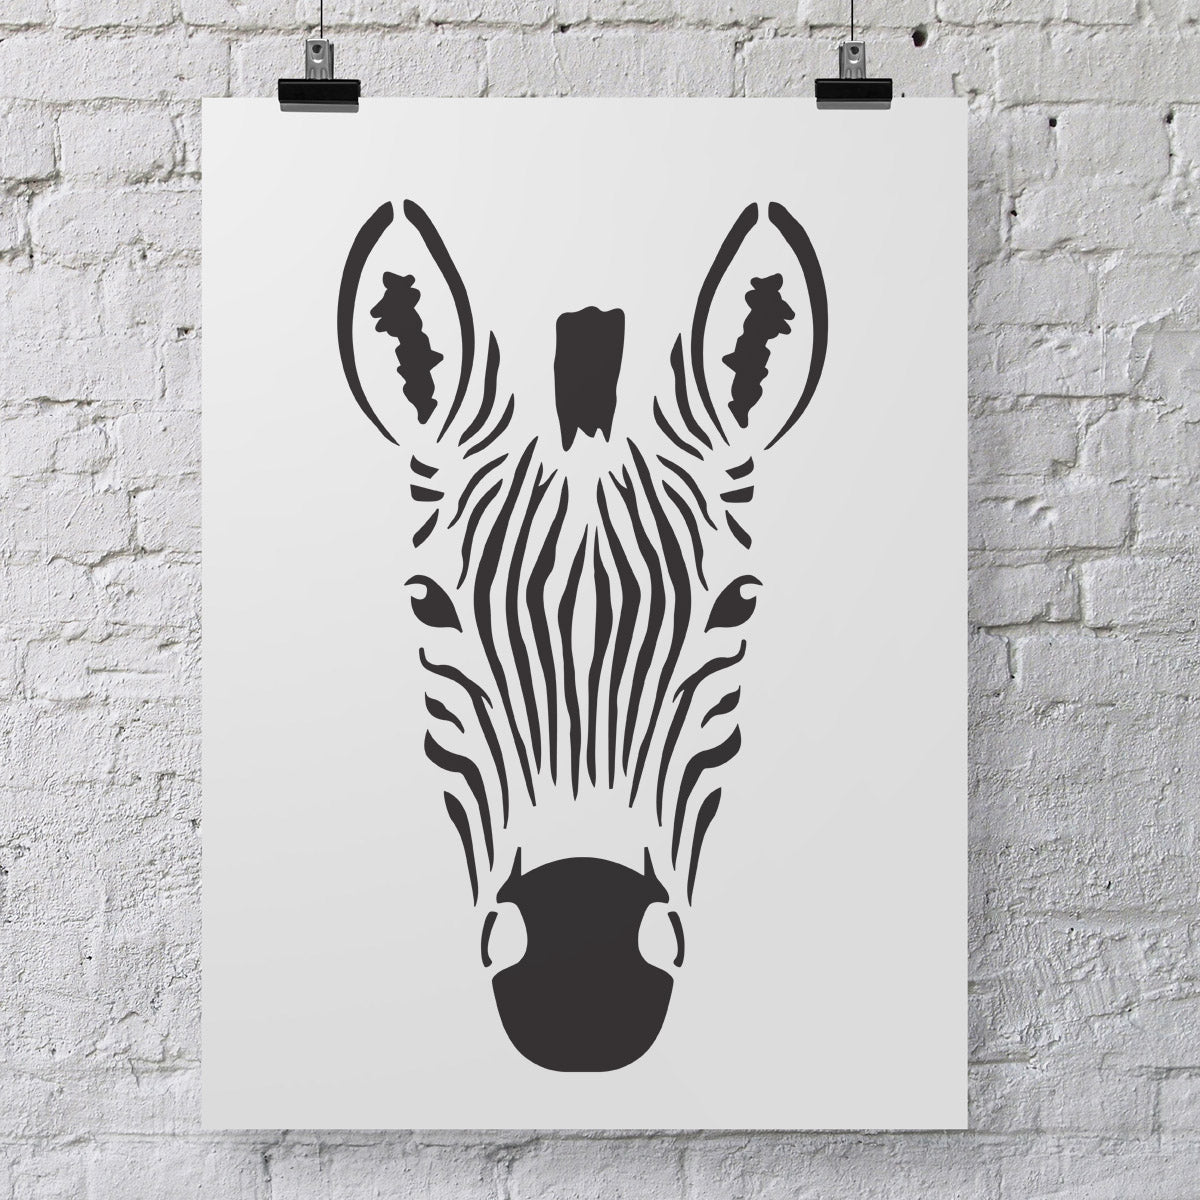 CraftStar Zebra Head Wall Stencil